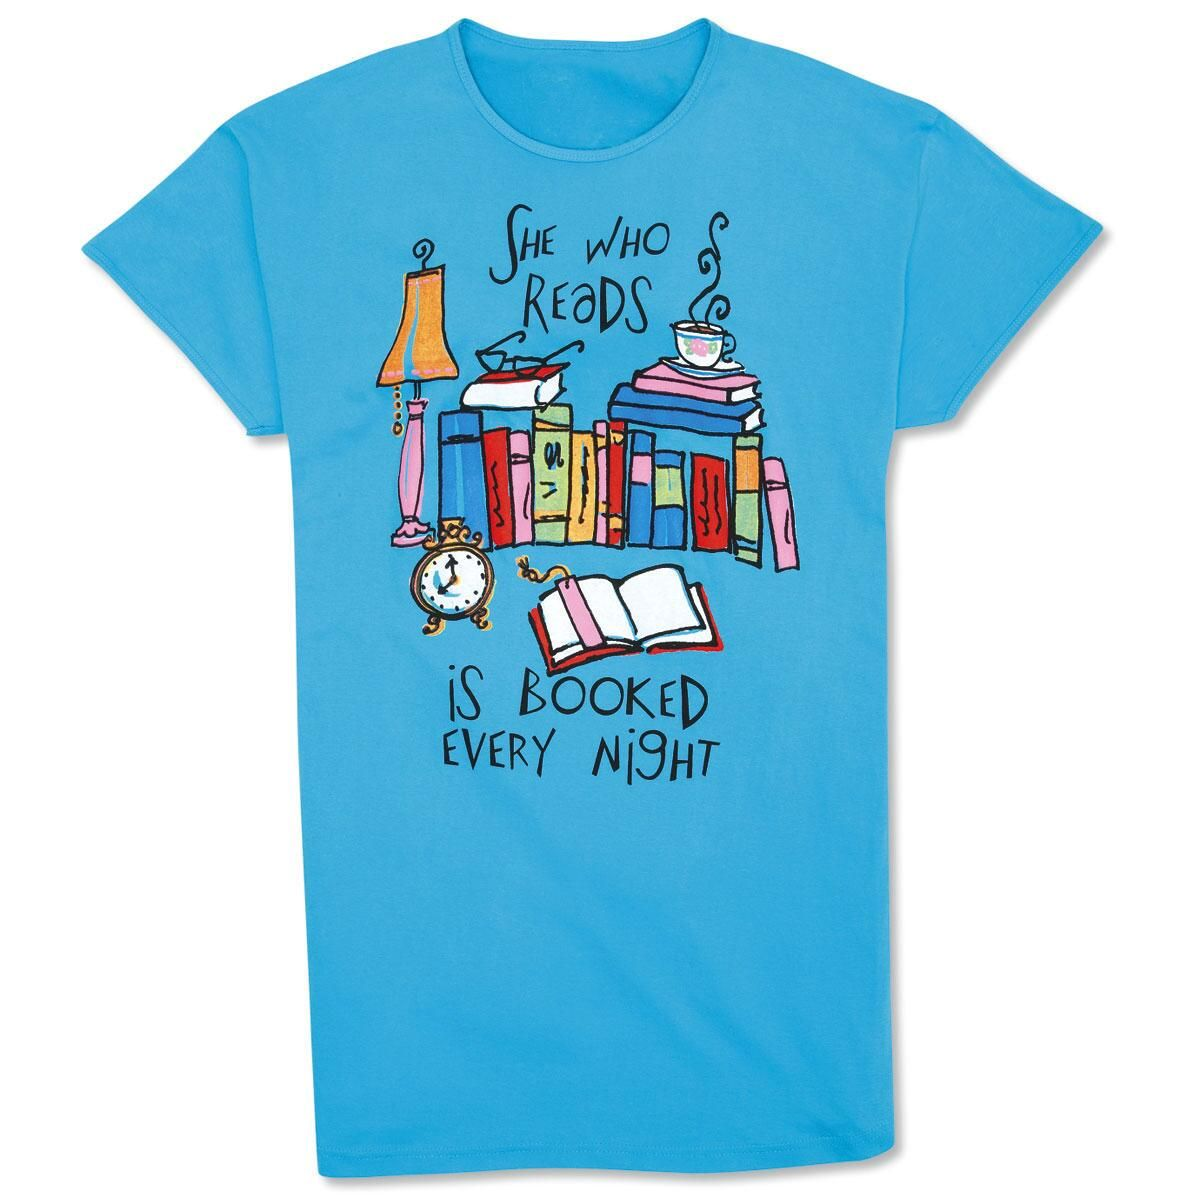 She Who Reads Nightshirt